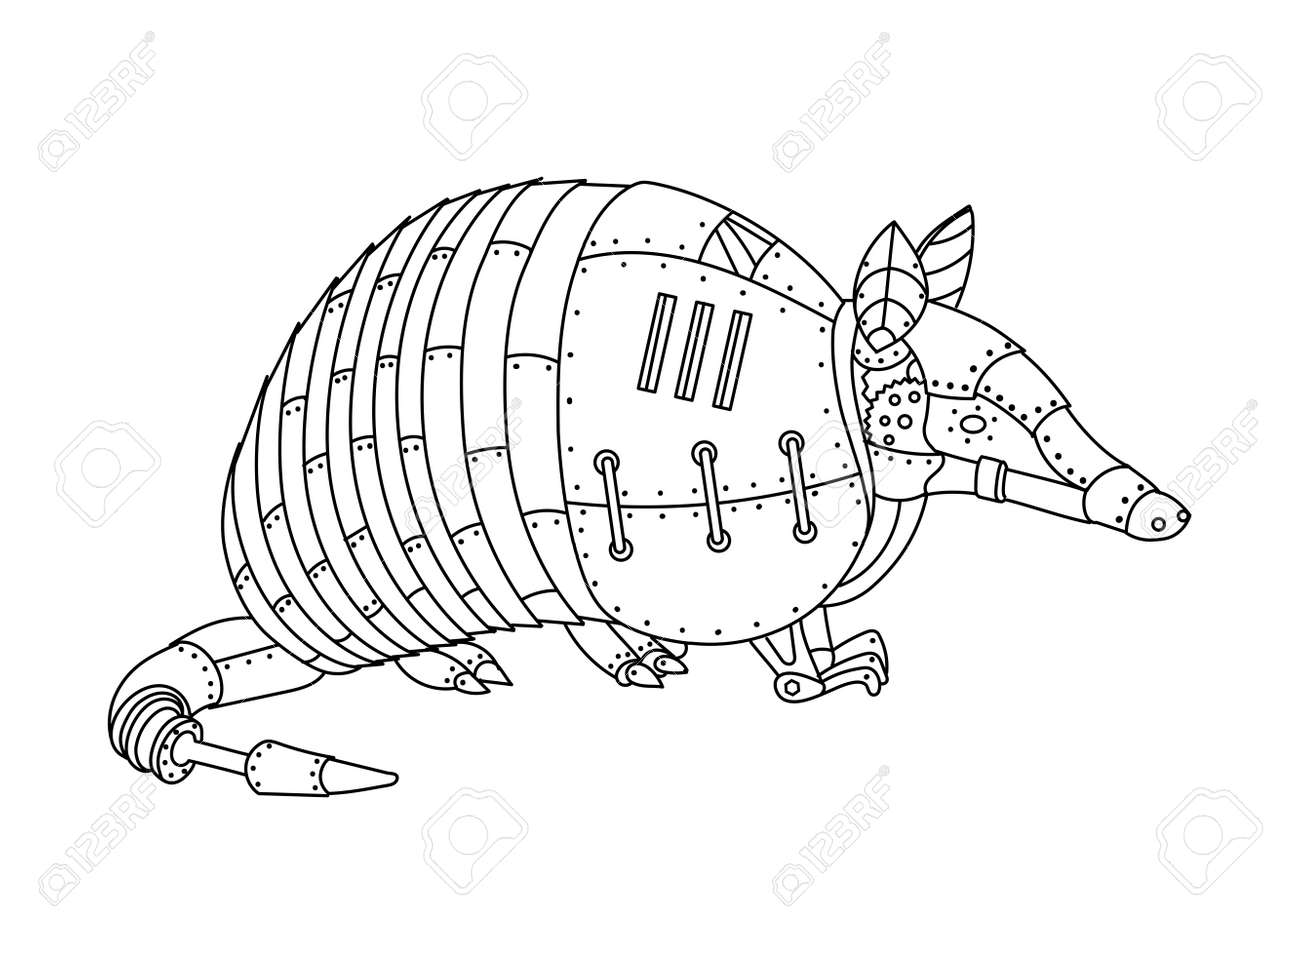 ste unk style armadillo mechanical animal coloring book for  ste unk style armadillo mechanical animal coloring book for adult vector illustration stock vector